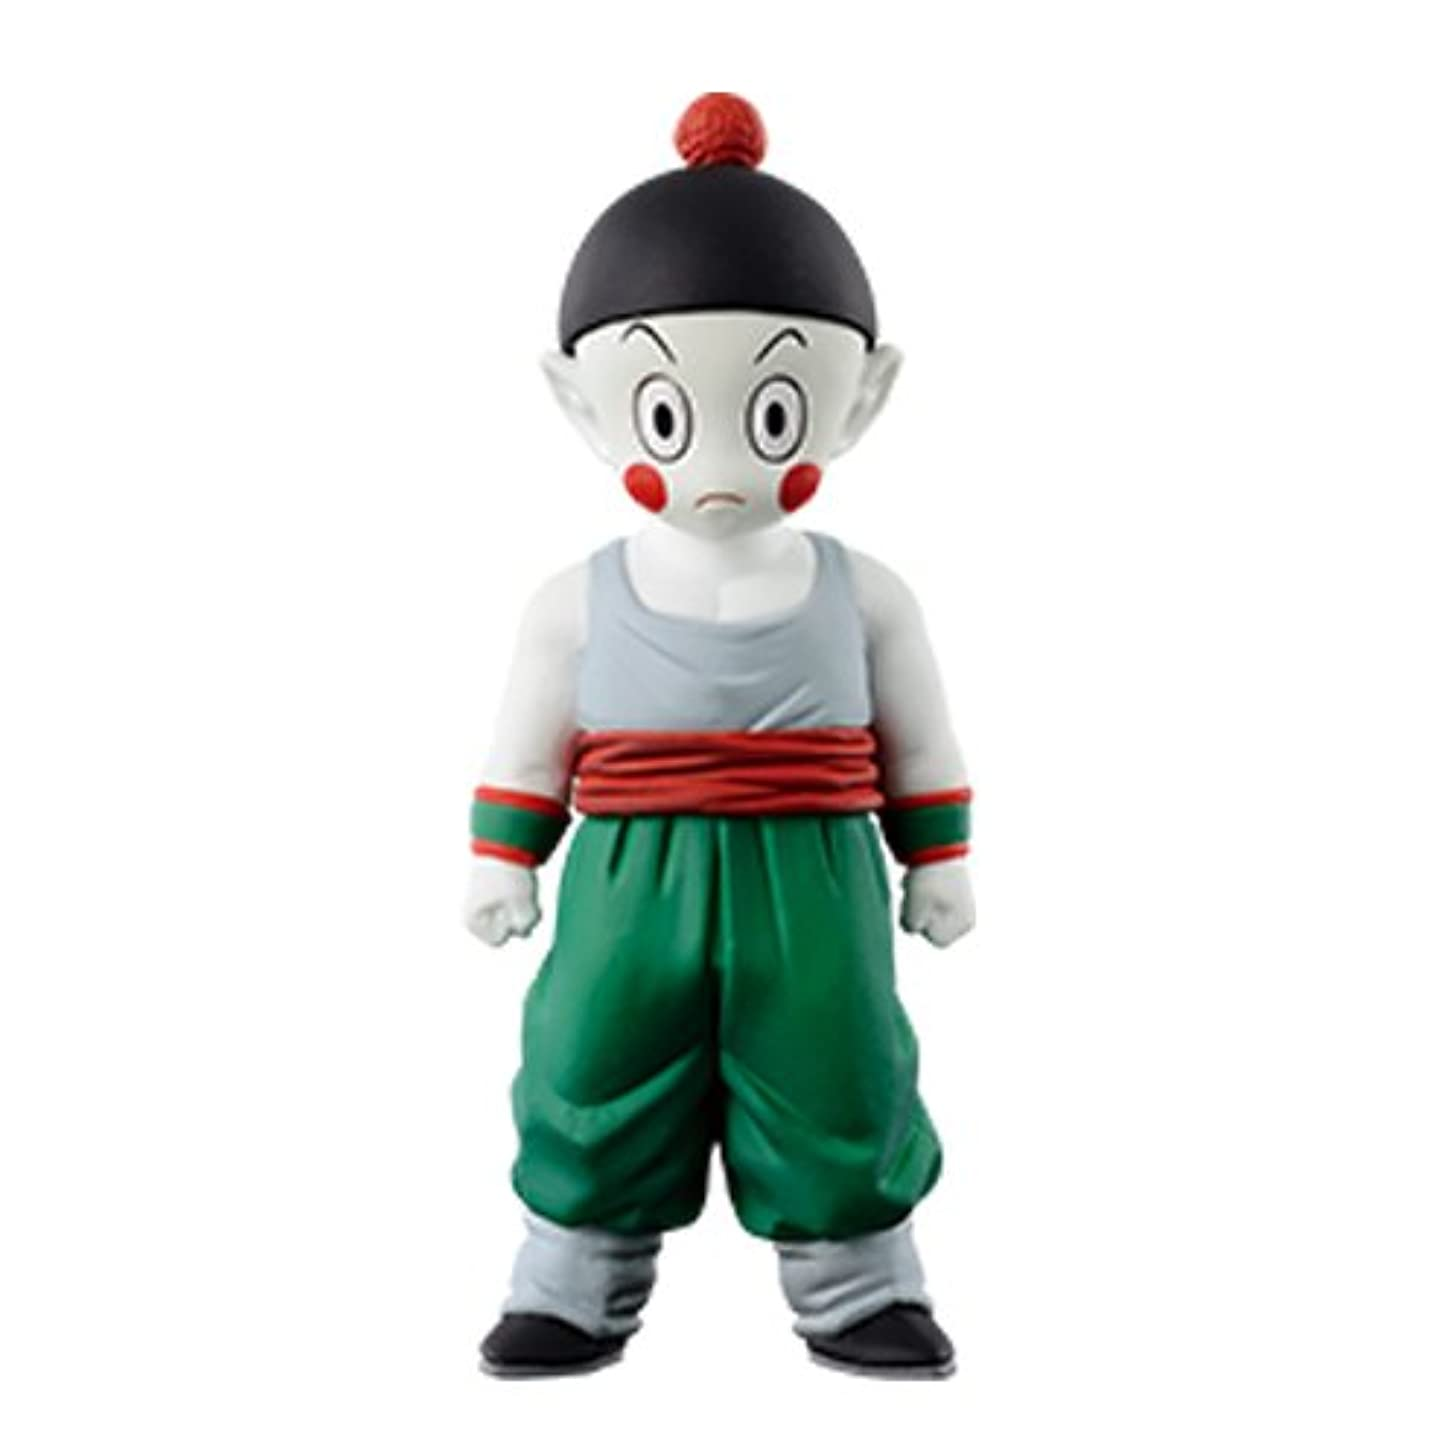 Banpresto 36221 Dragon Ball Z Super Formative Ep. 7 Chiaotzu/Chaozu Action Figure, 3